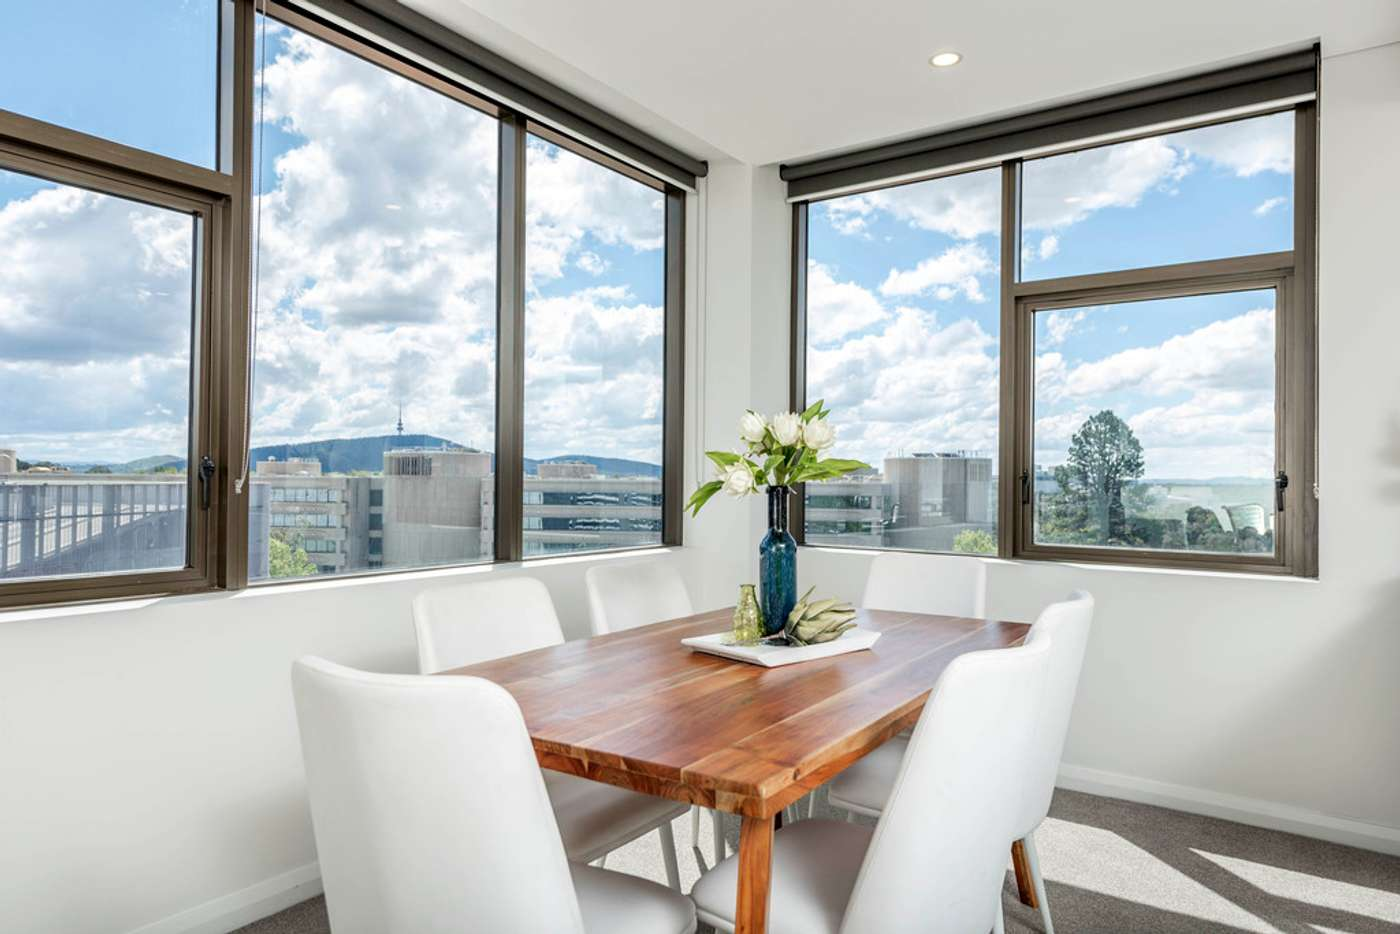 Sixth view of Homely apartment listing, 62/30 Blackall Street, Barton ACT 2600